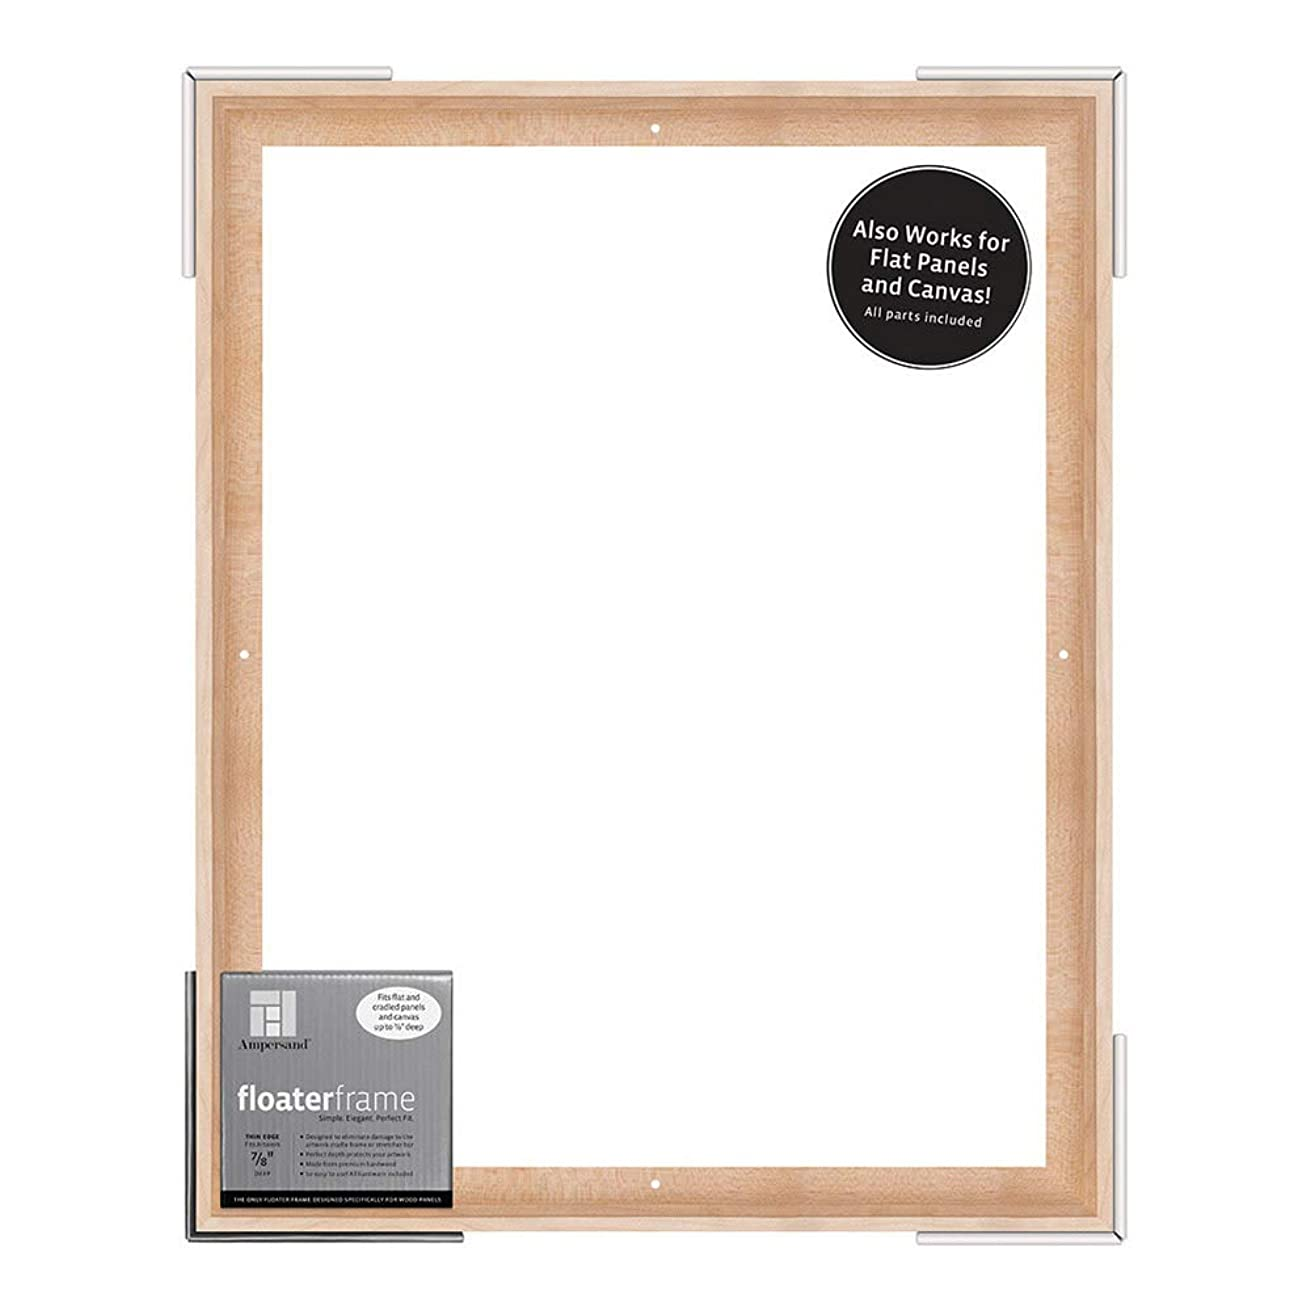 Ampersand Floaterframe for Wood Panels, 7/8 Inch Depth, Thin, 16X20 Inch, Maple (FTHIN781620M)